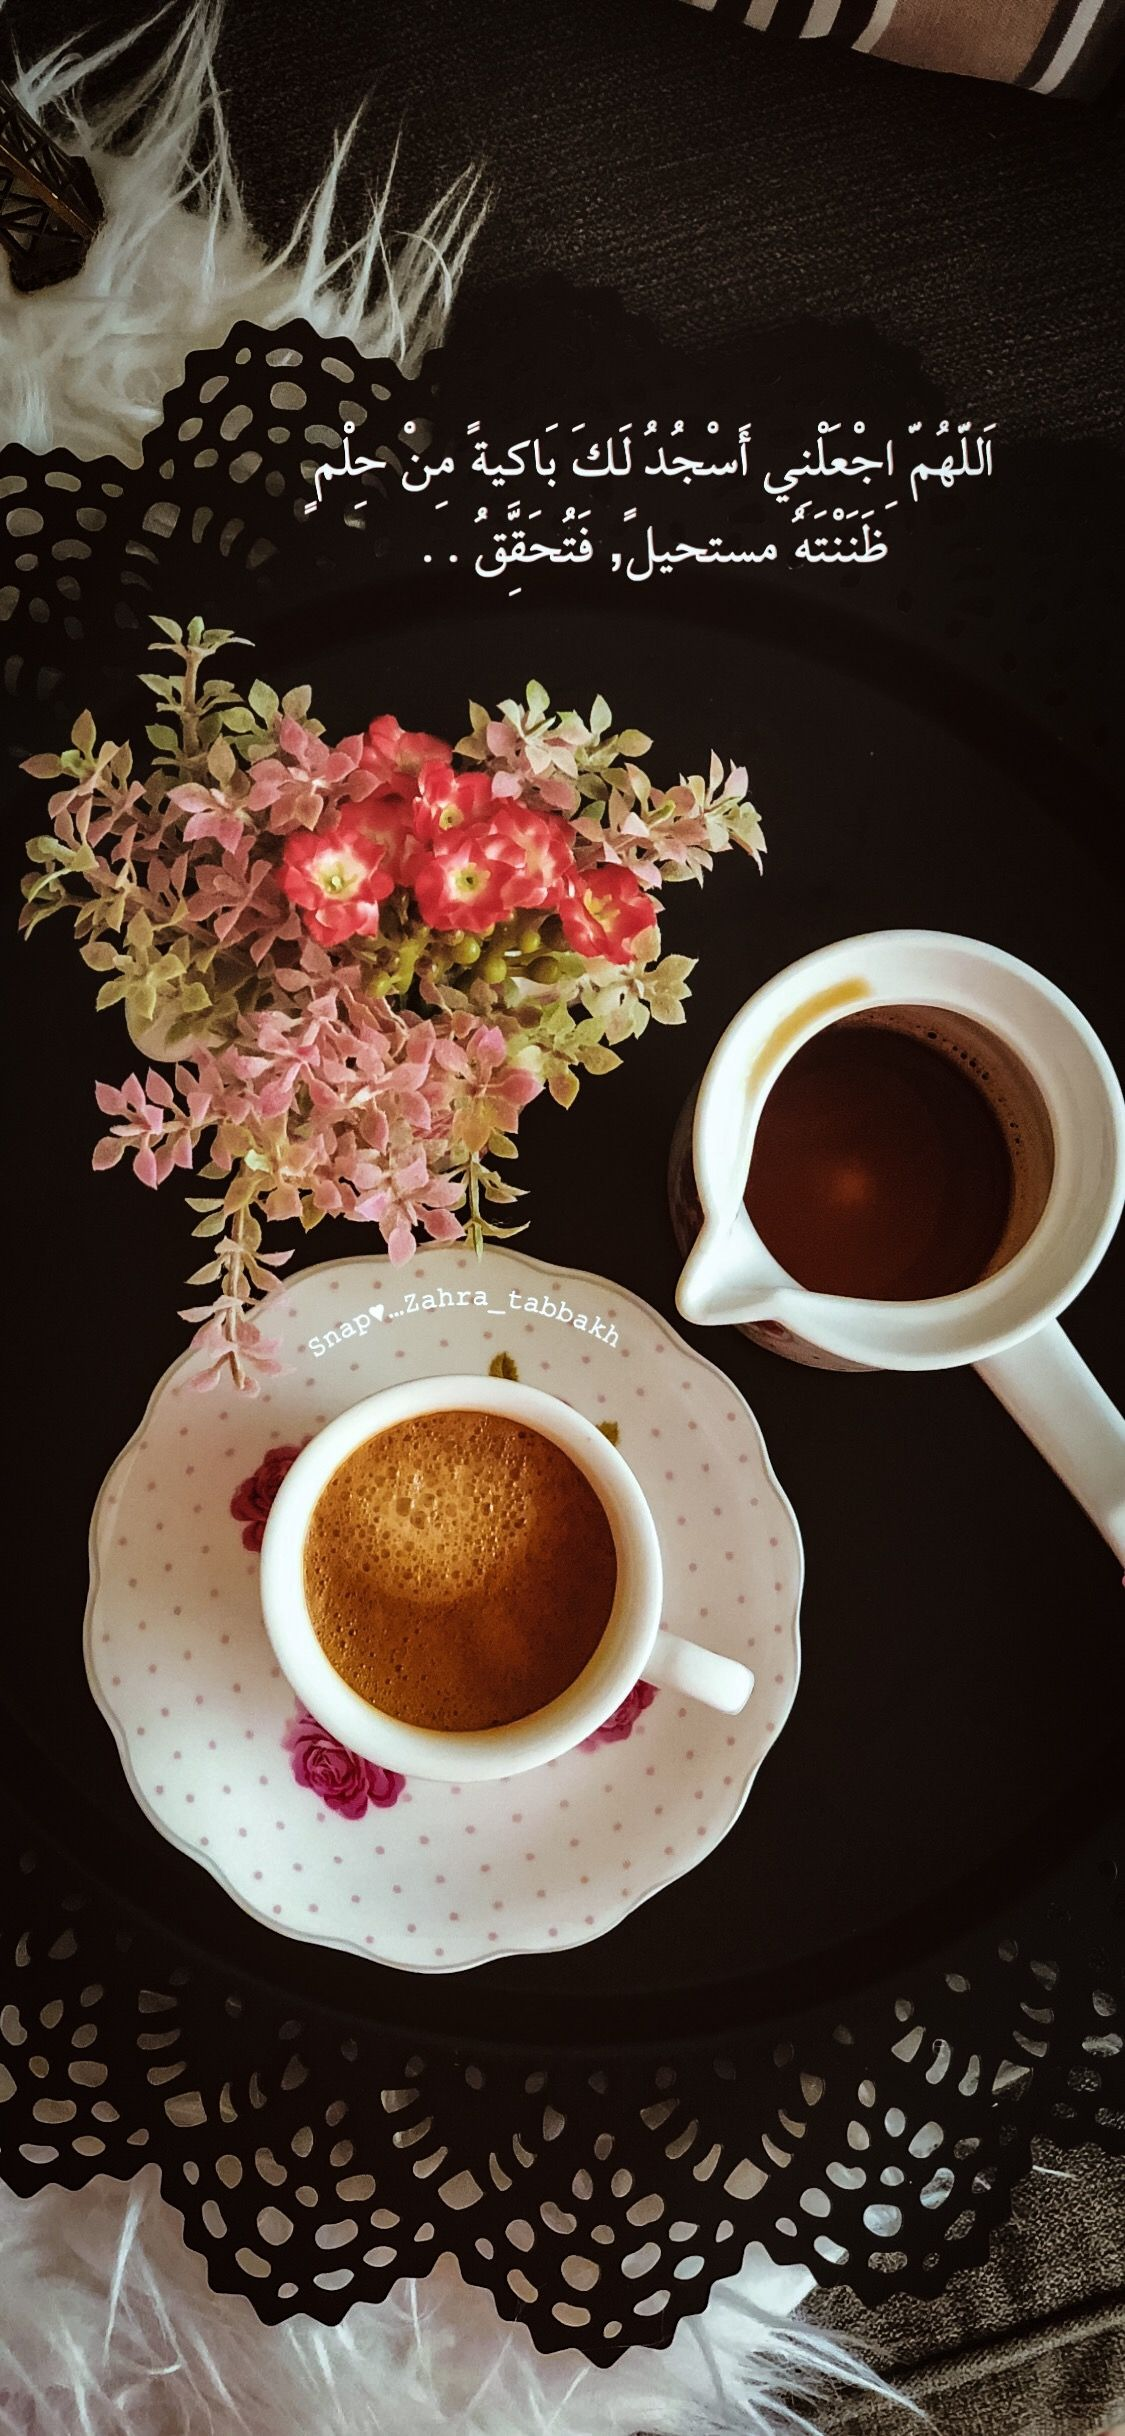 Pin By Main Ail On قهوة Prayer For The Day Coffee Flower Islamic Pictures